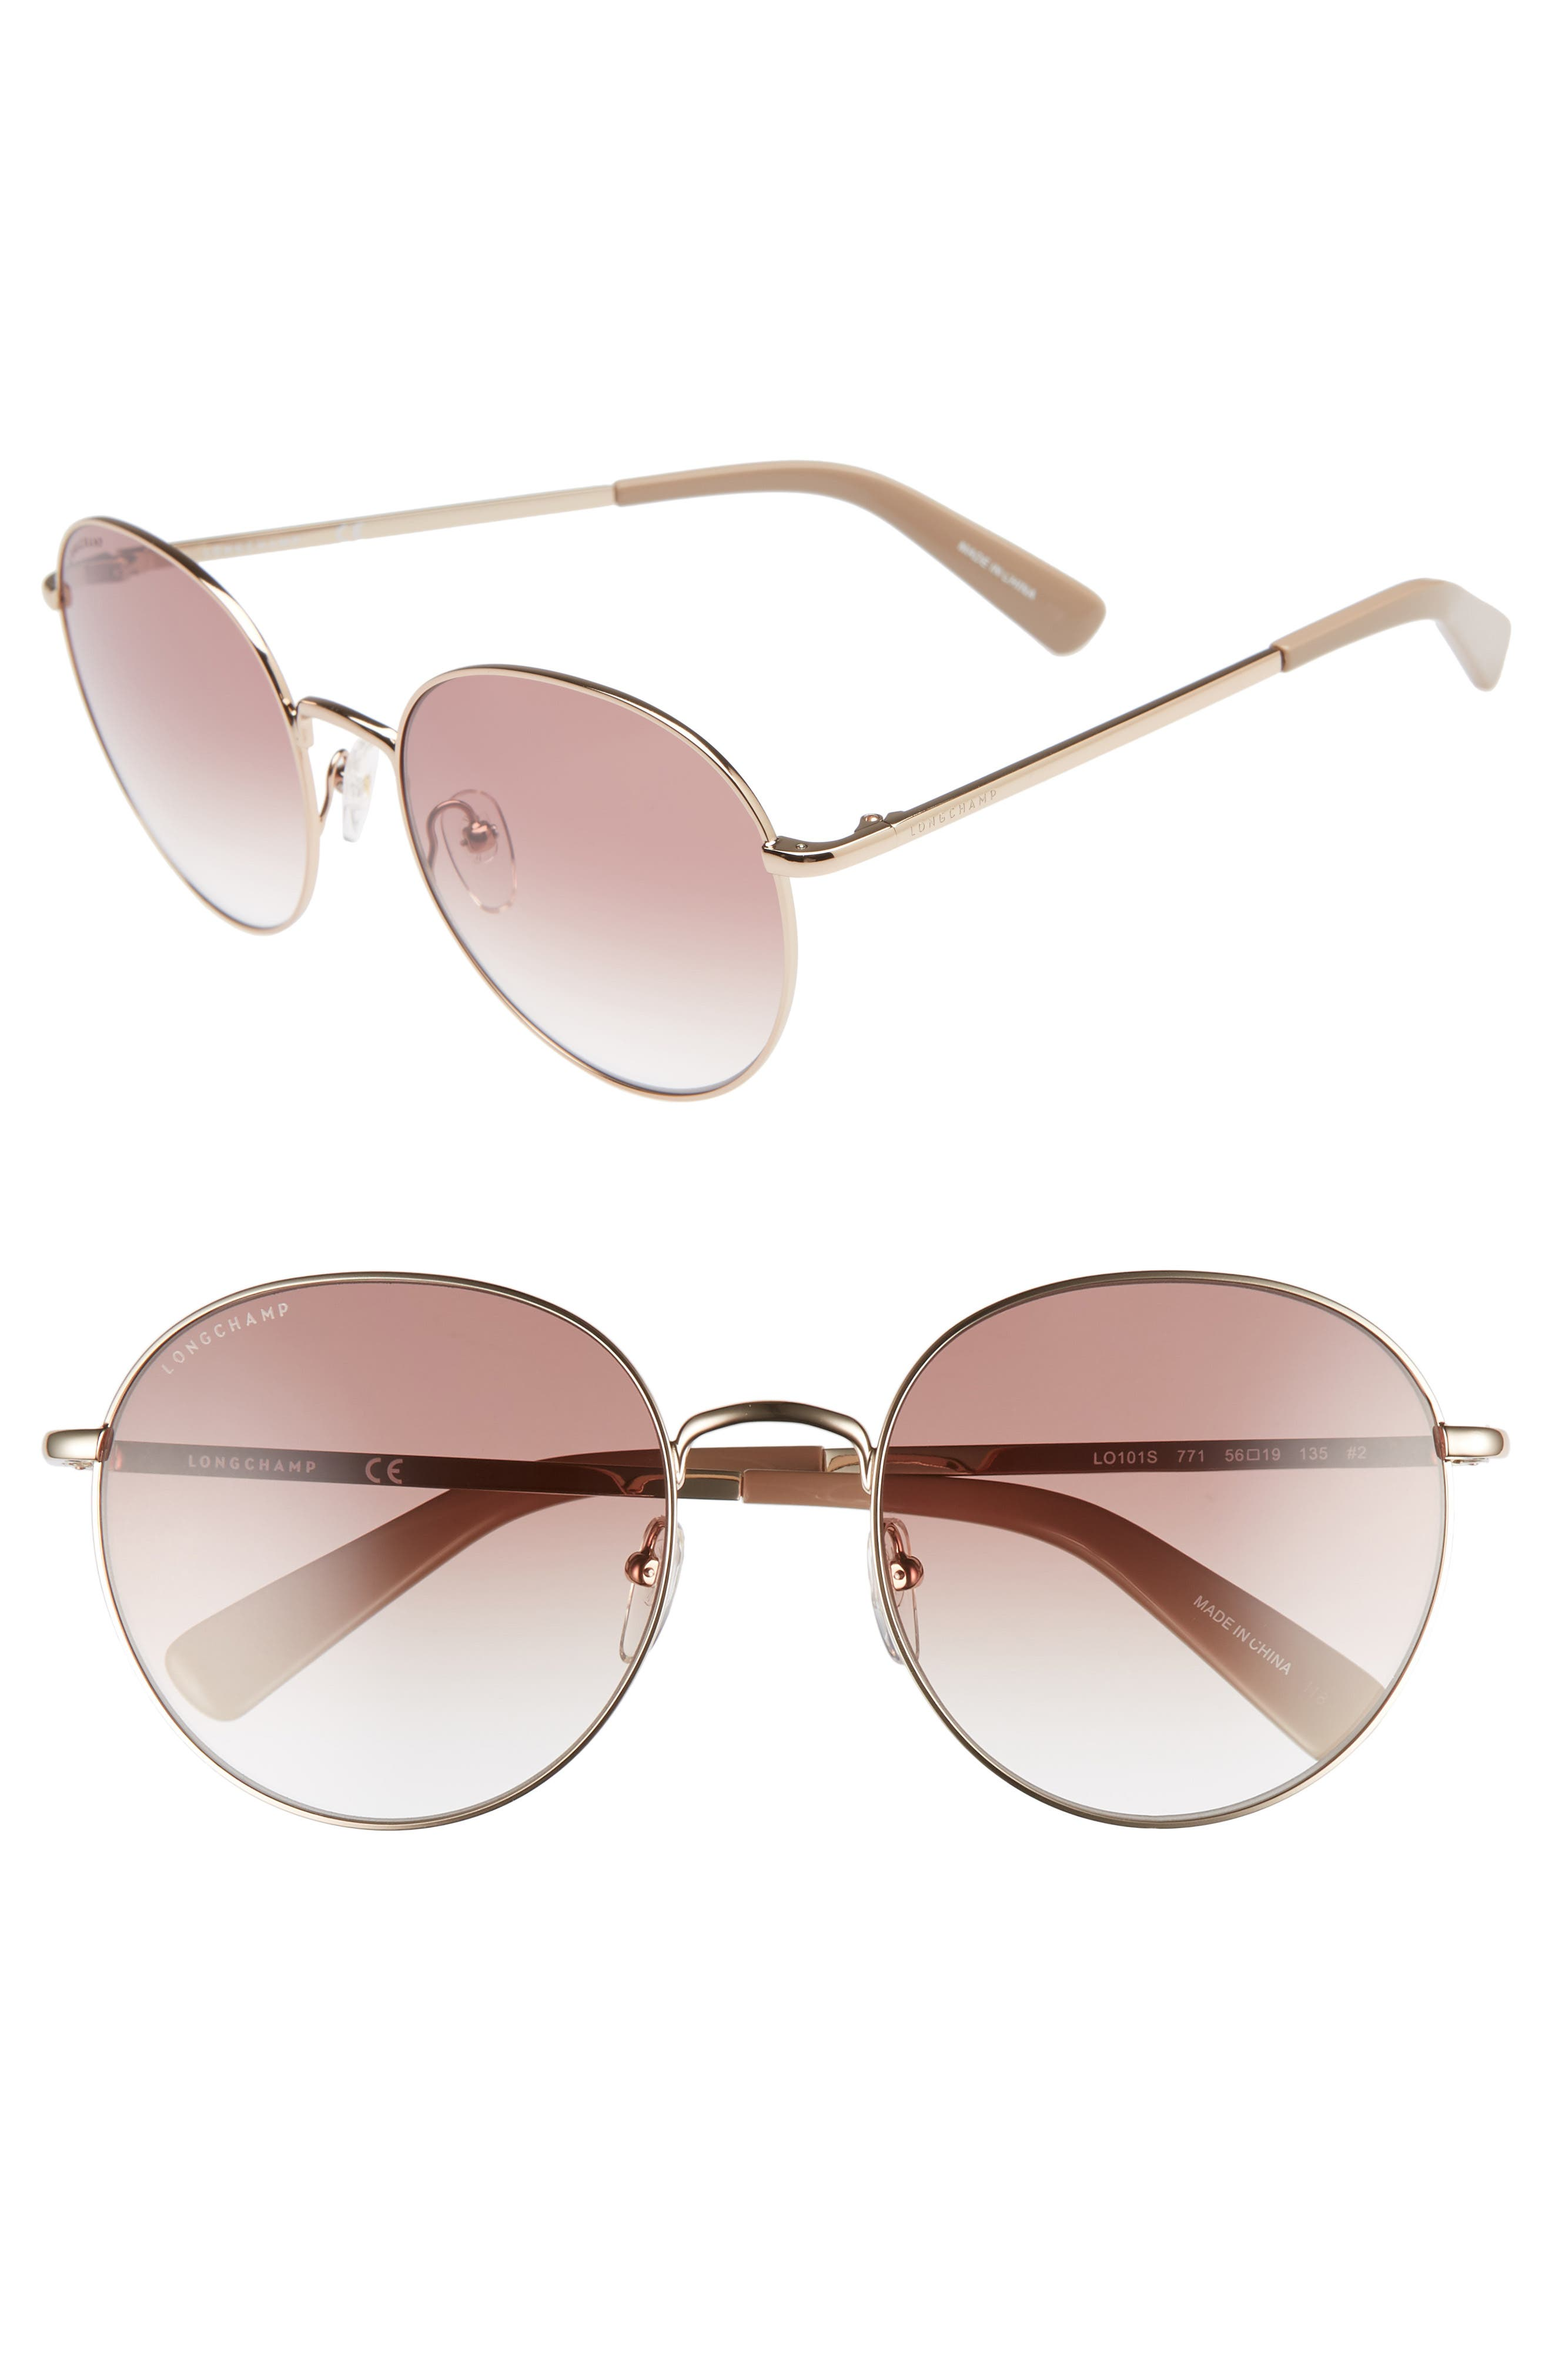 56mm Round Sunglasses,                             Main thumbnail 1, color,                             ROSE GOLD/ NUDE